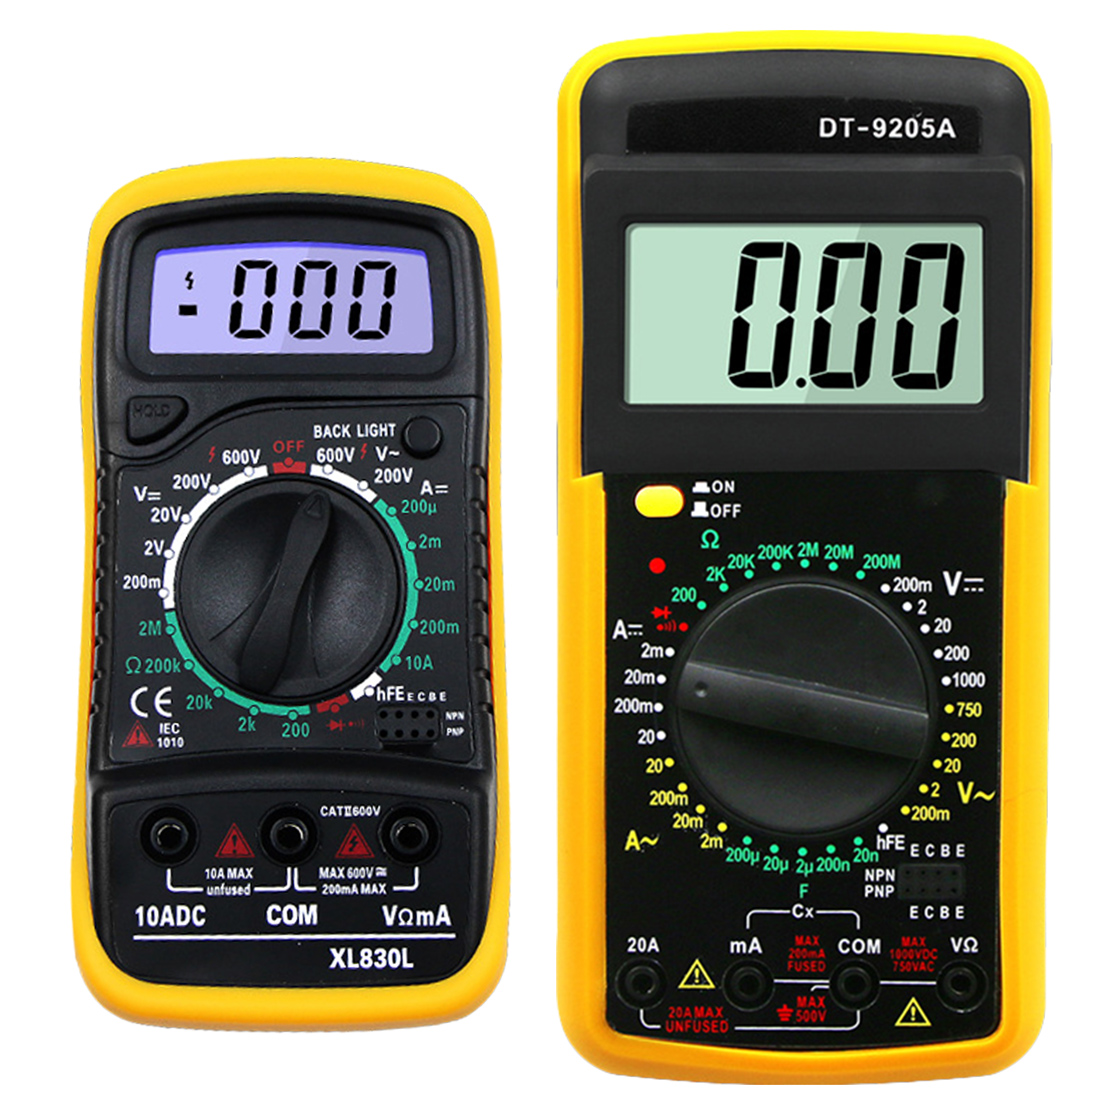 Handheld LCD Multimer Digital Multimeter Backlight AC/DC Ammeter Voltmeter Ohm Tester Meter XL830L/DT-9205A мультиметр flyfireshop 2 lcd avometer xl830l